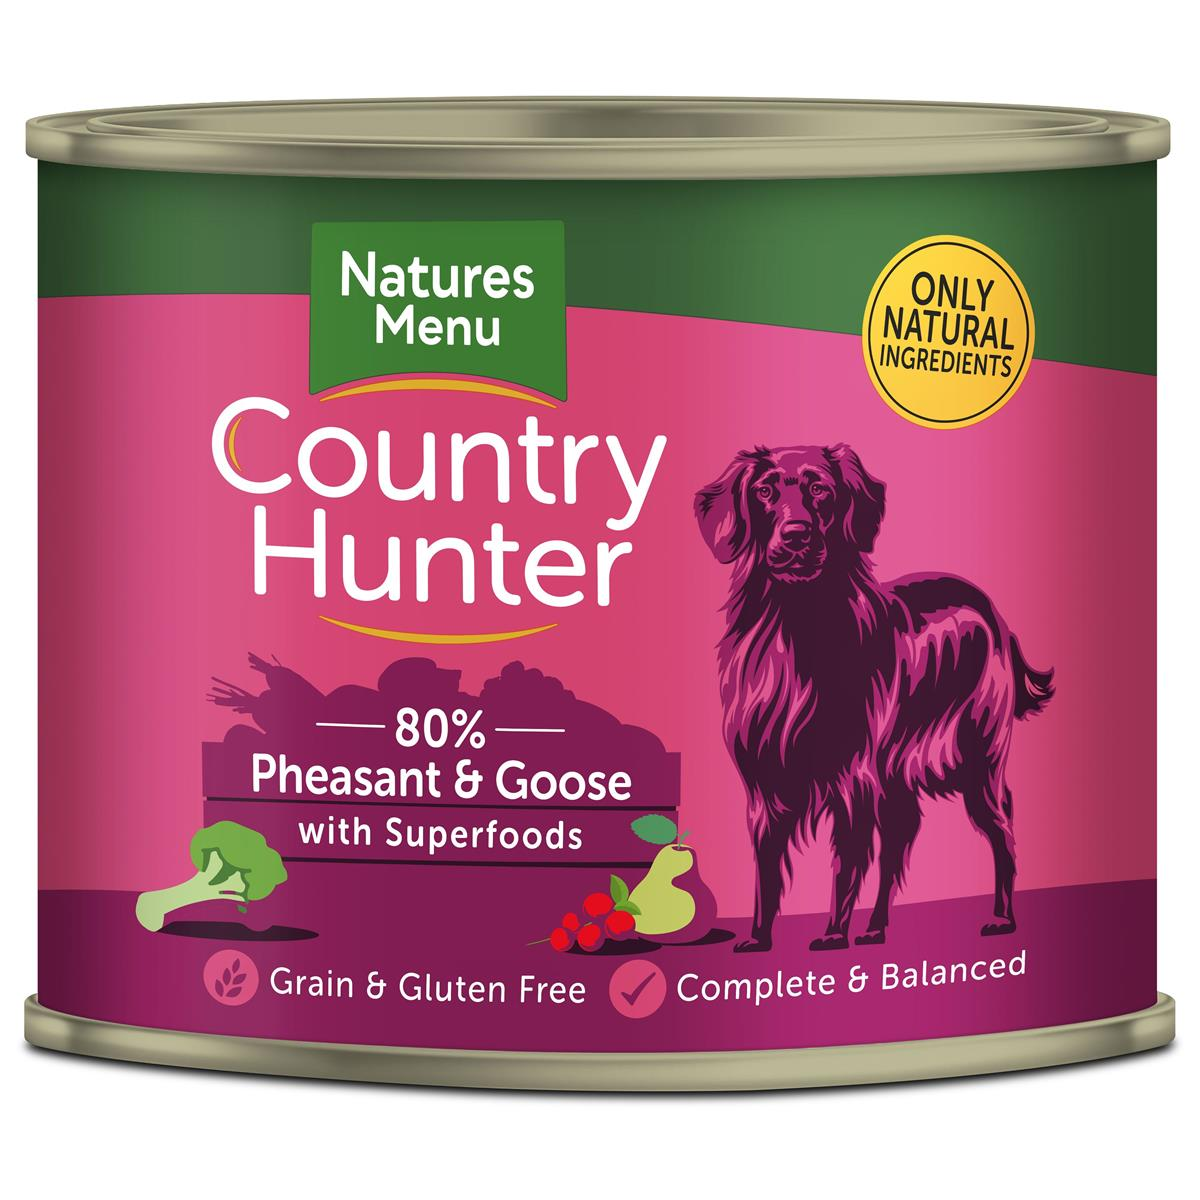 NM Boksemat Hund Country Hunter 80% Fasan & Gås 600g (6stk) Rød